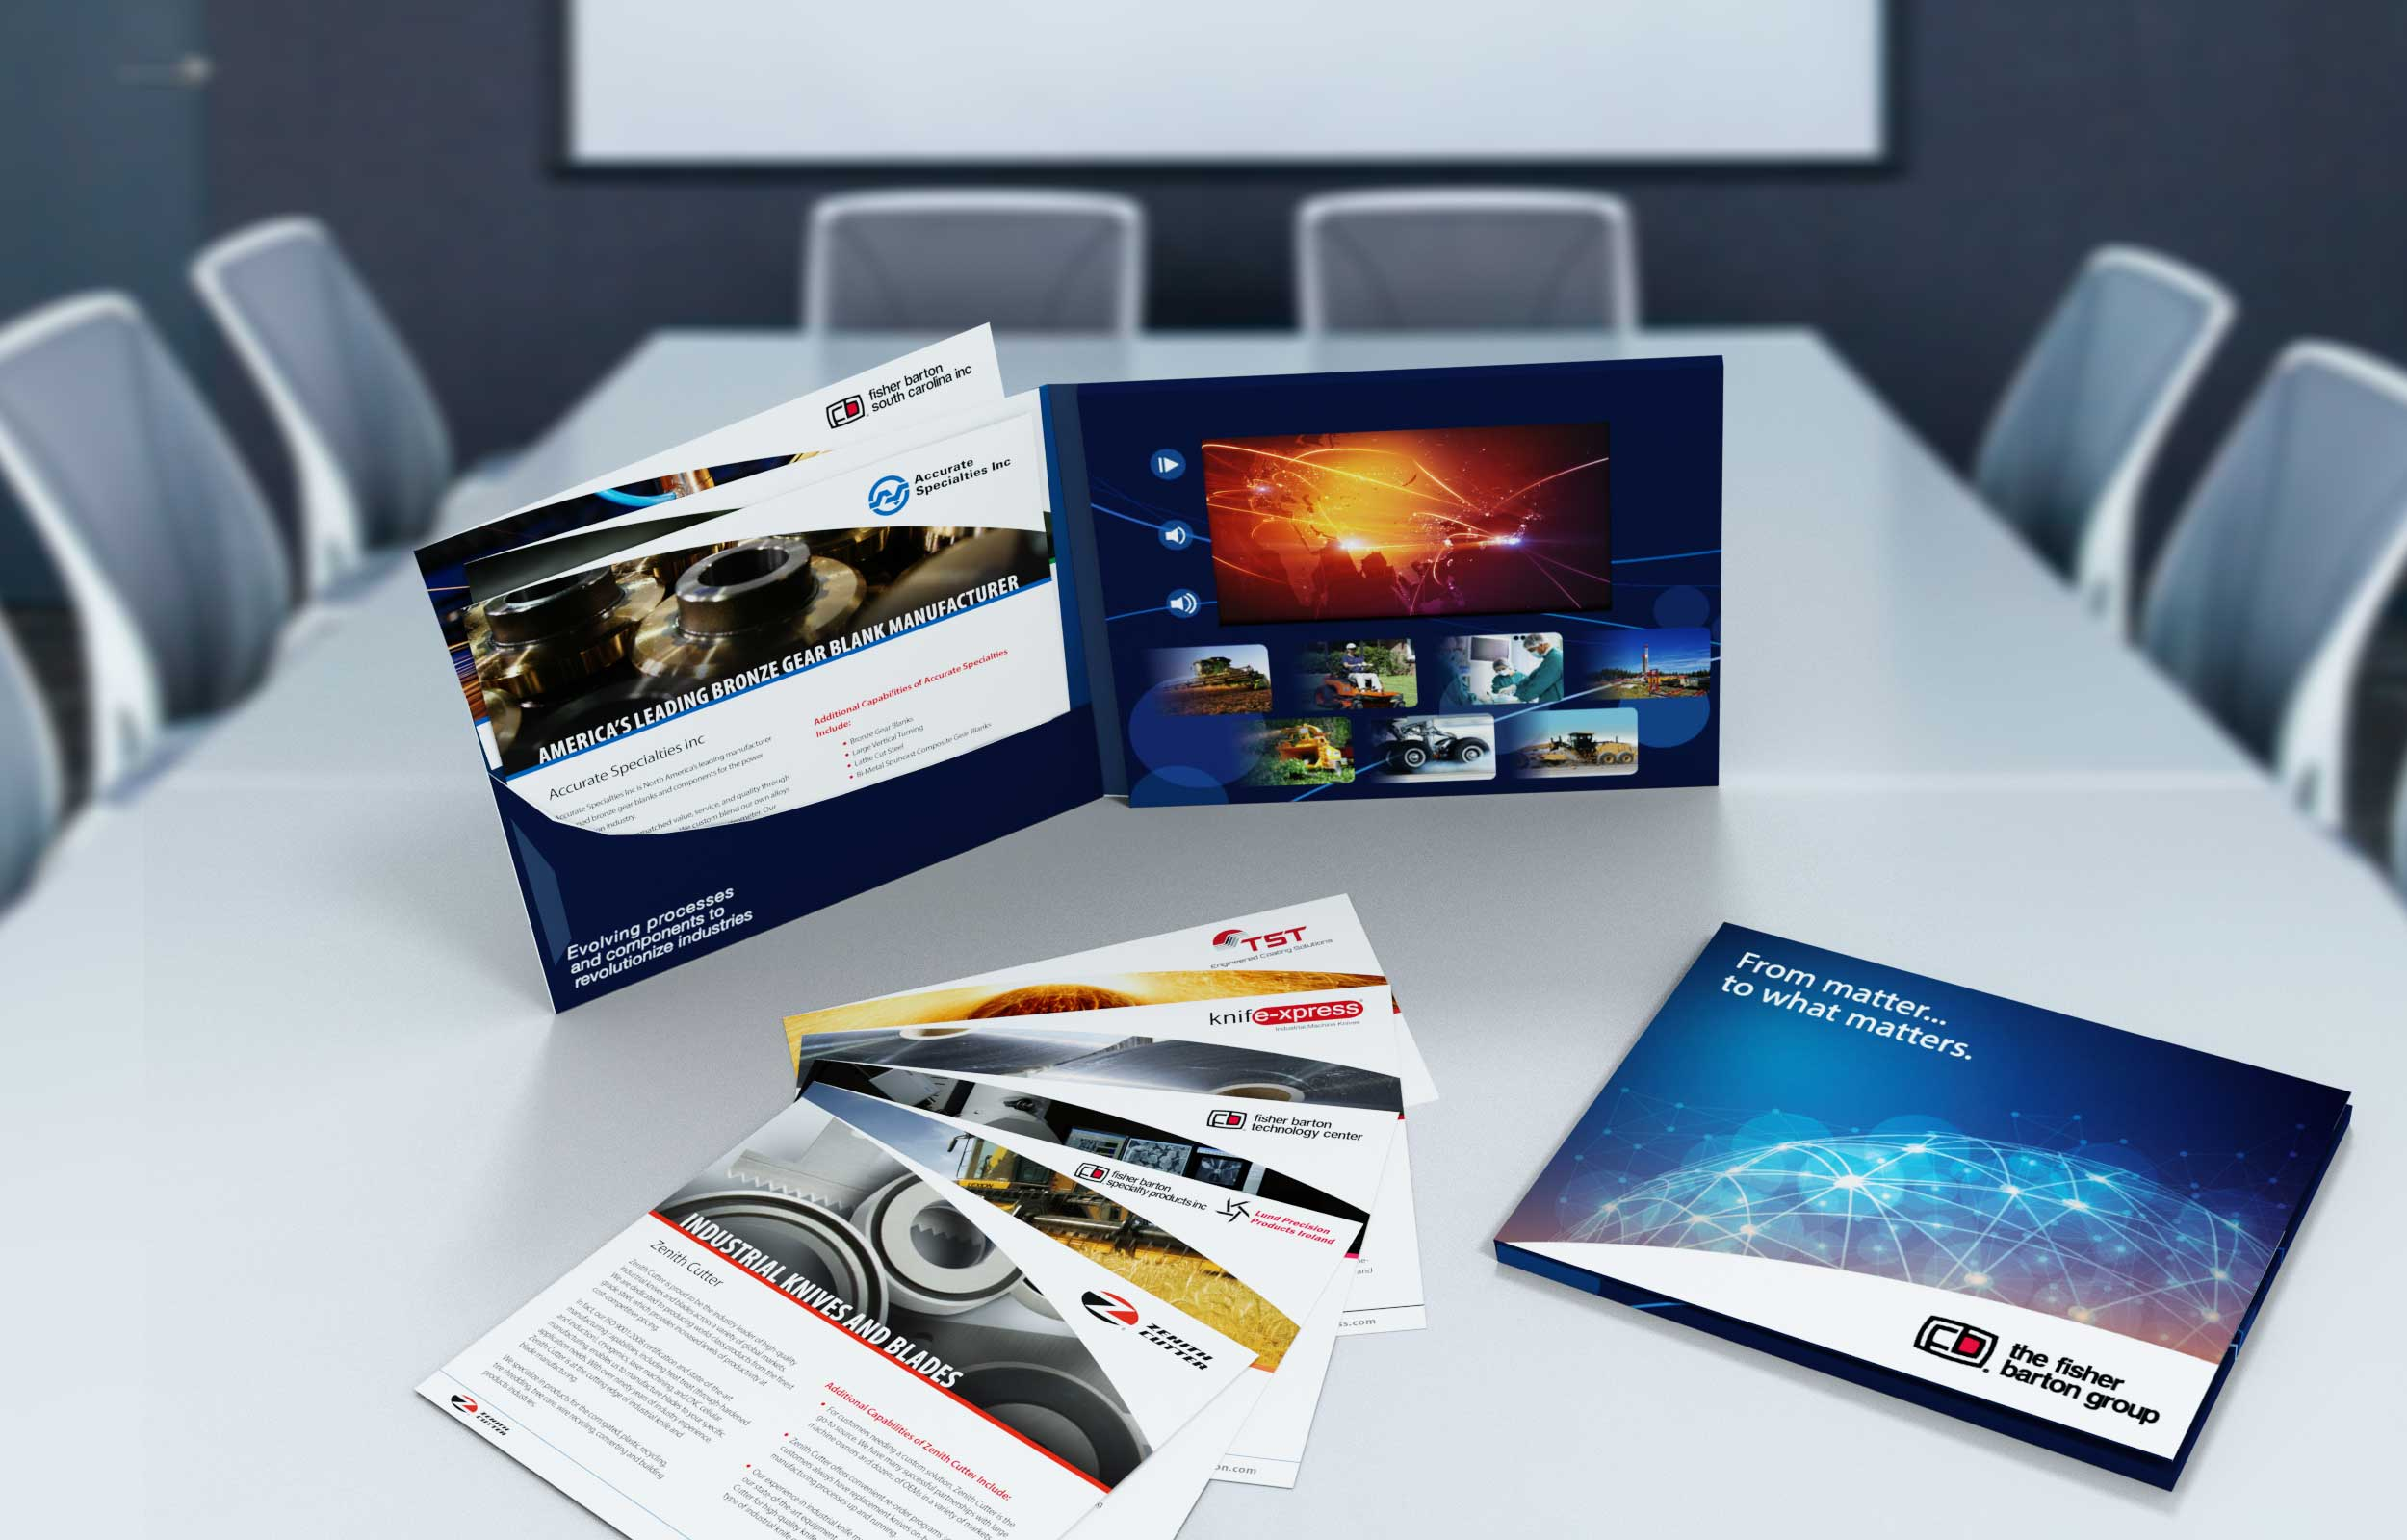 Fisher Barton marketing collateral developed by NAVEO marketing as part of brand value proposition development.